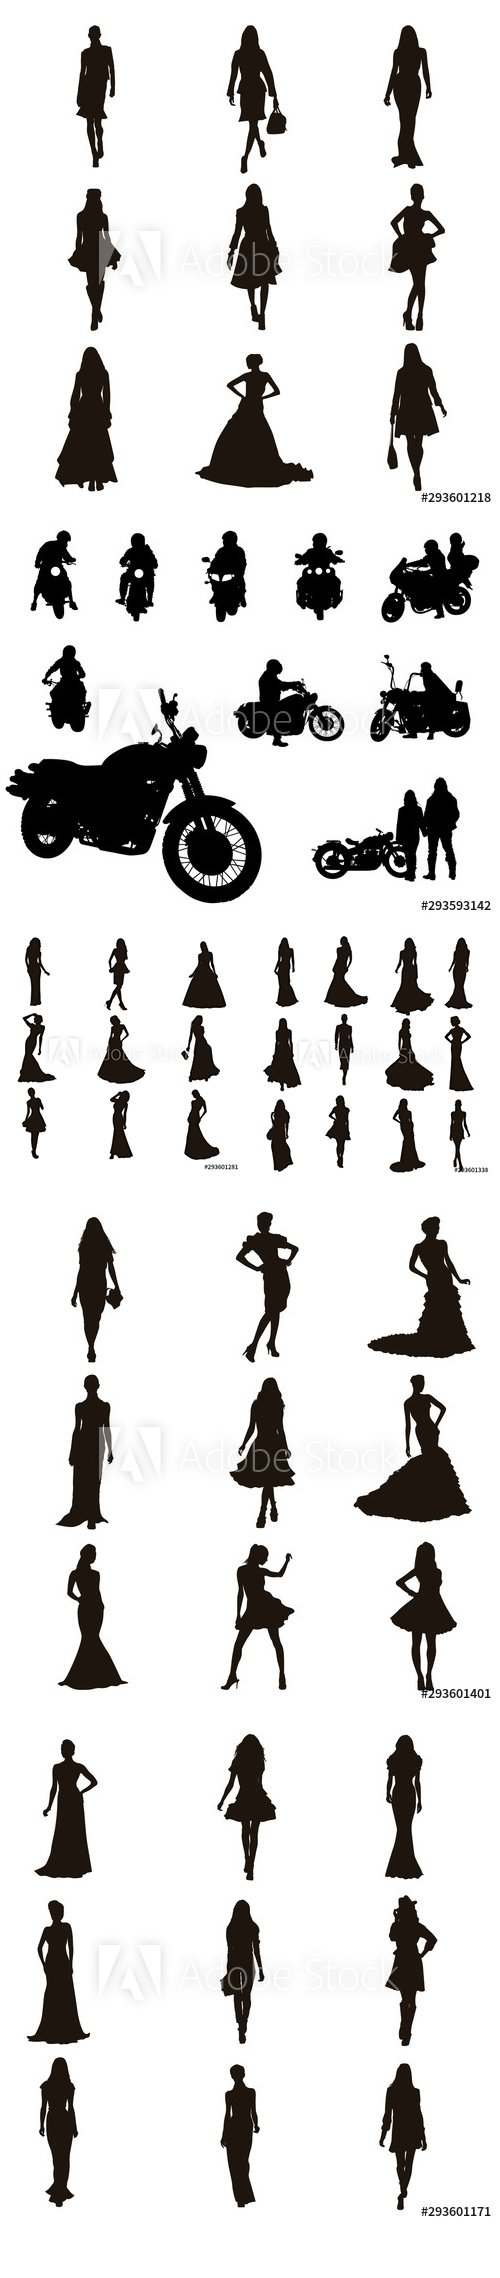 Fashion Model Silhouettes and Motor Bike Background